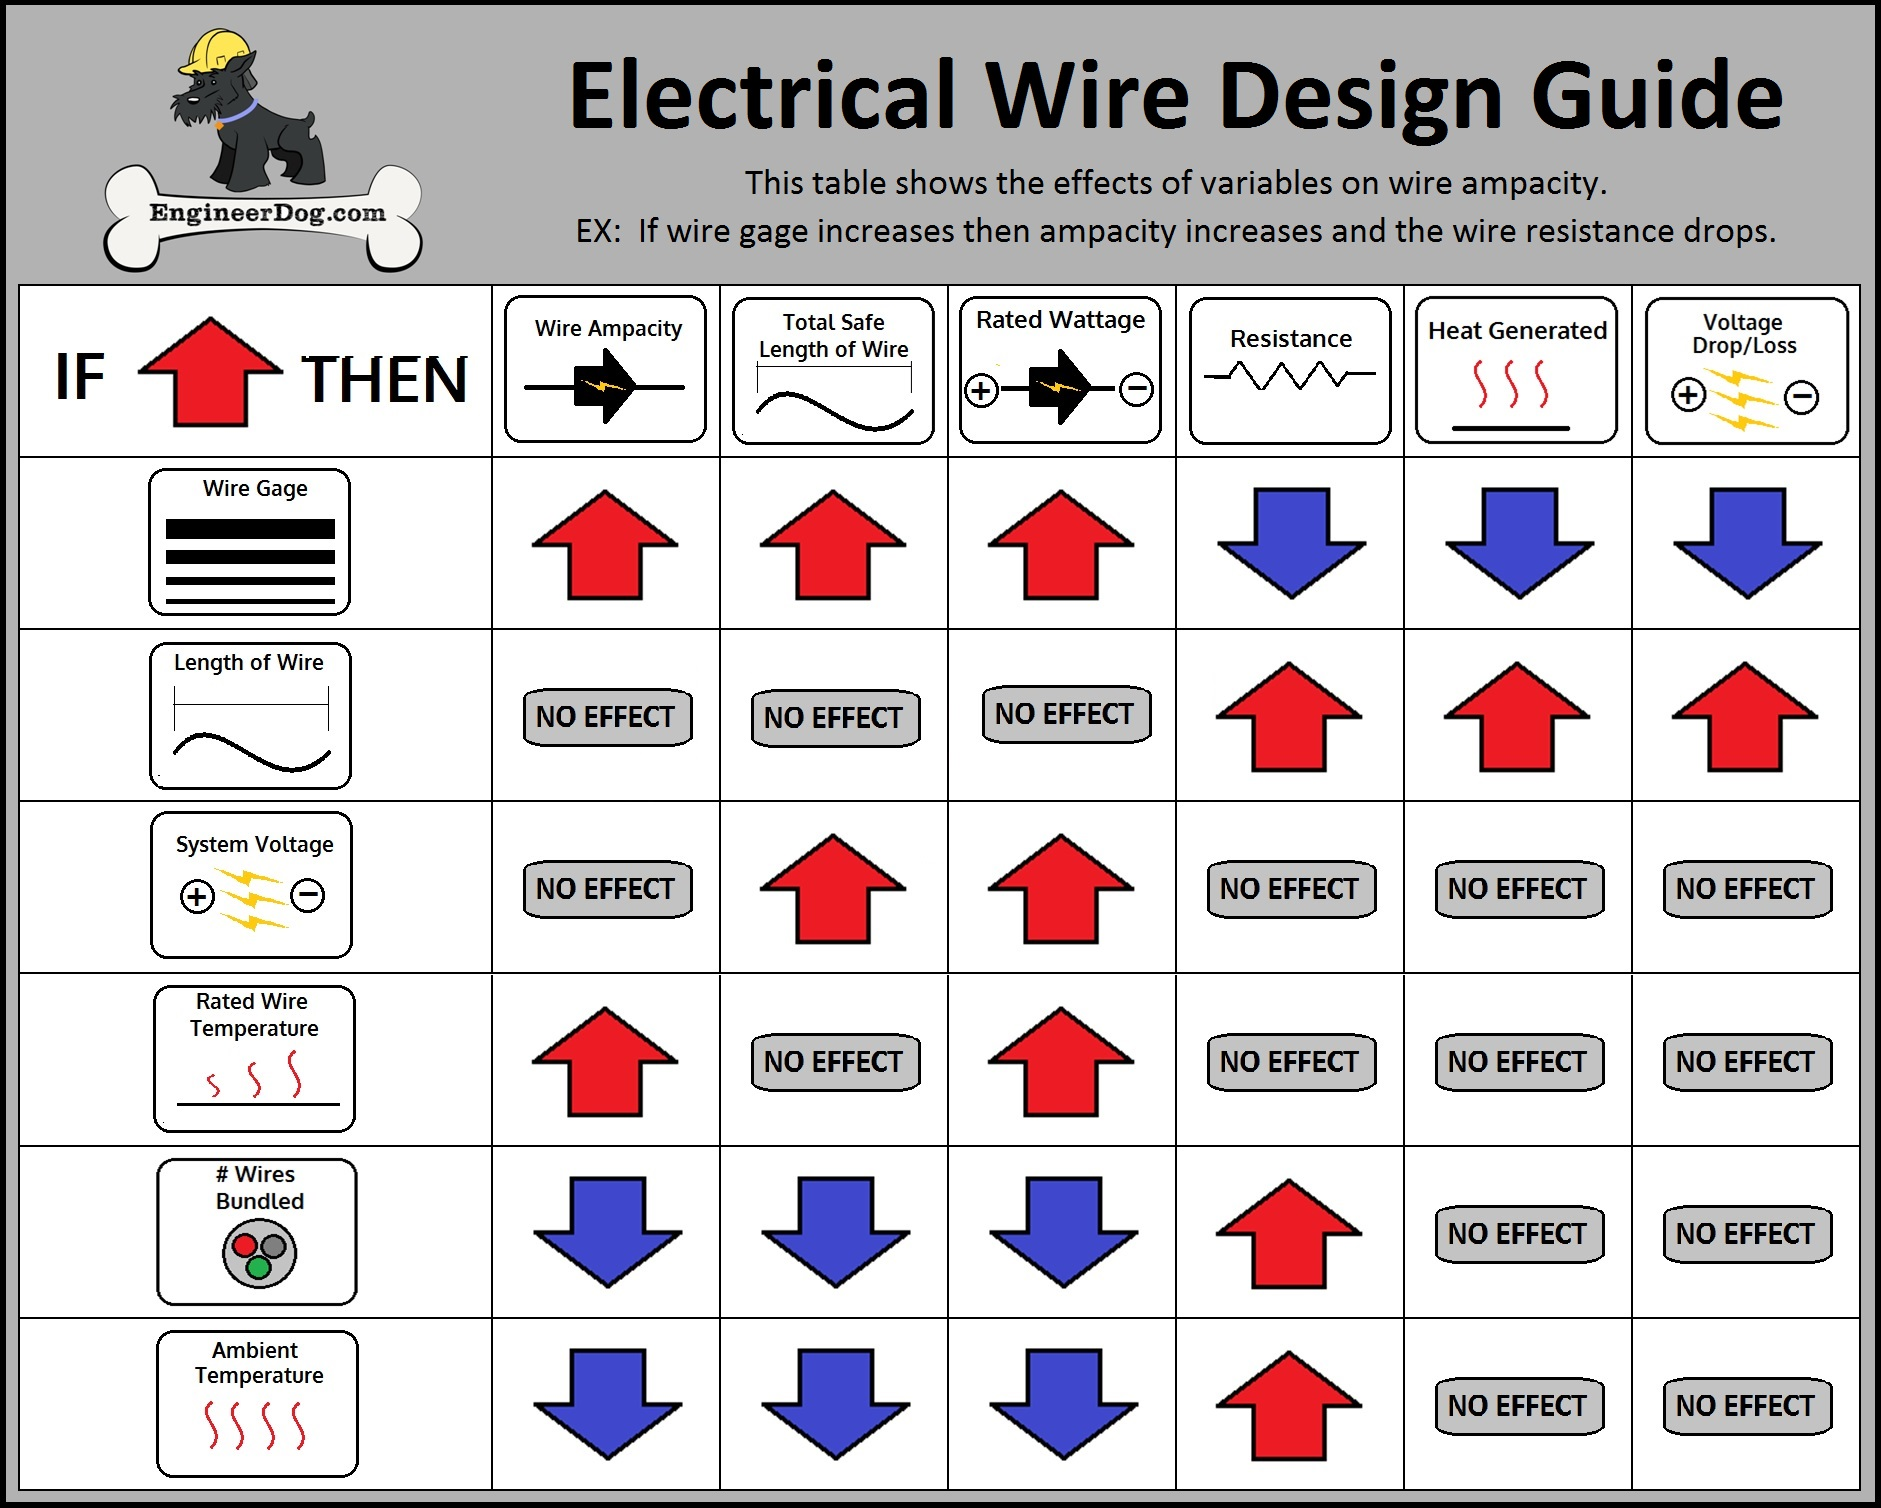 Free electrical wire gauge sizing calculator engineerdog wire sizing guide wire ampacity current carrying capacity keyboard keysfo Image collections